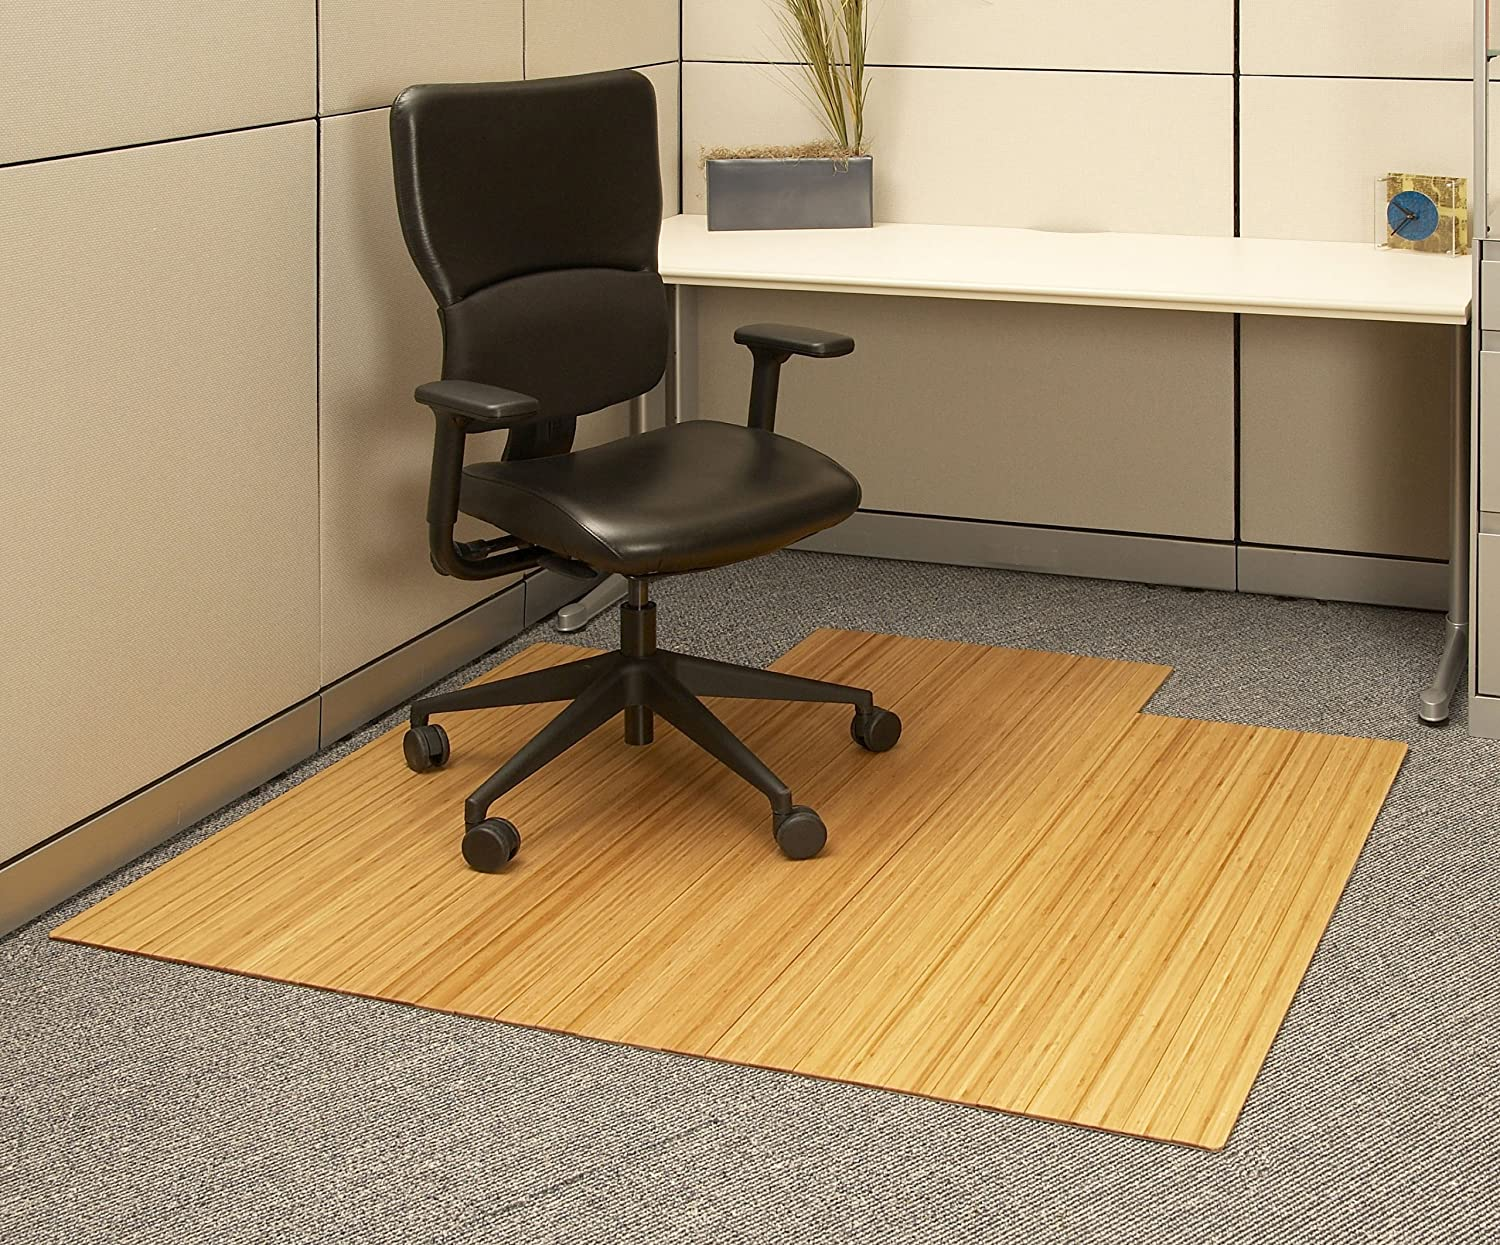 dr interdesign floors mat stukes floor sale bamboo sevalife product susan